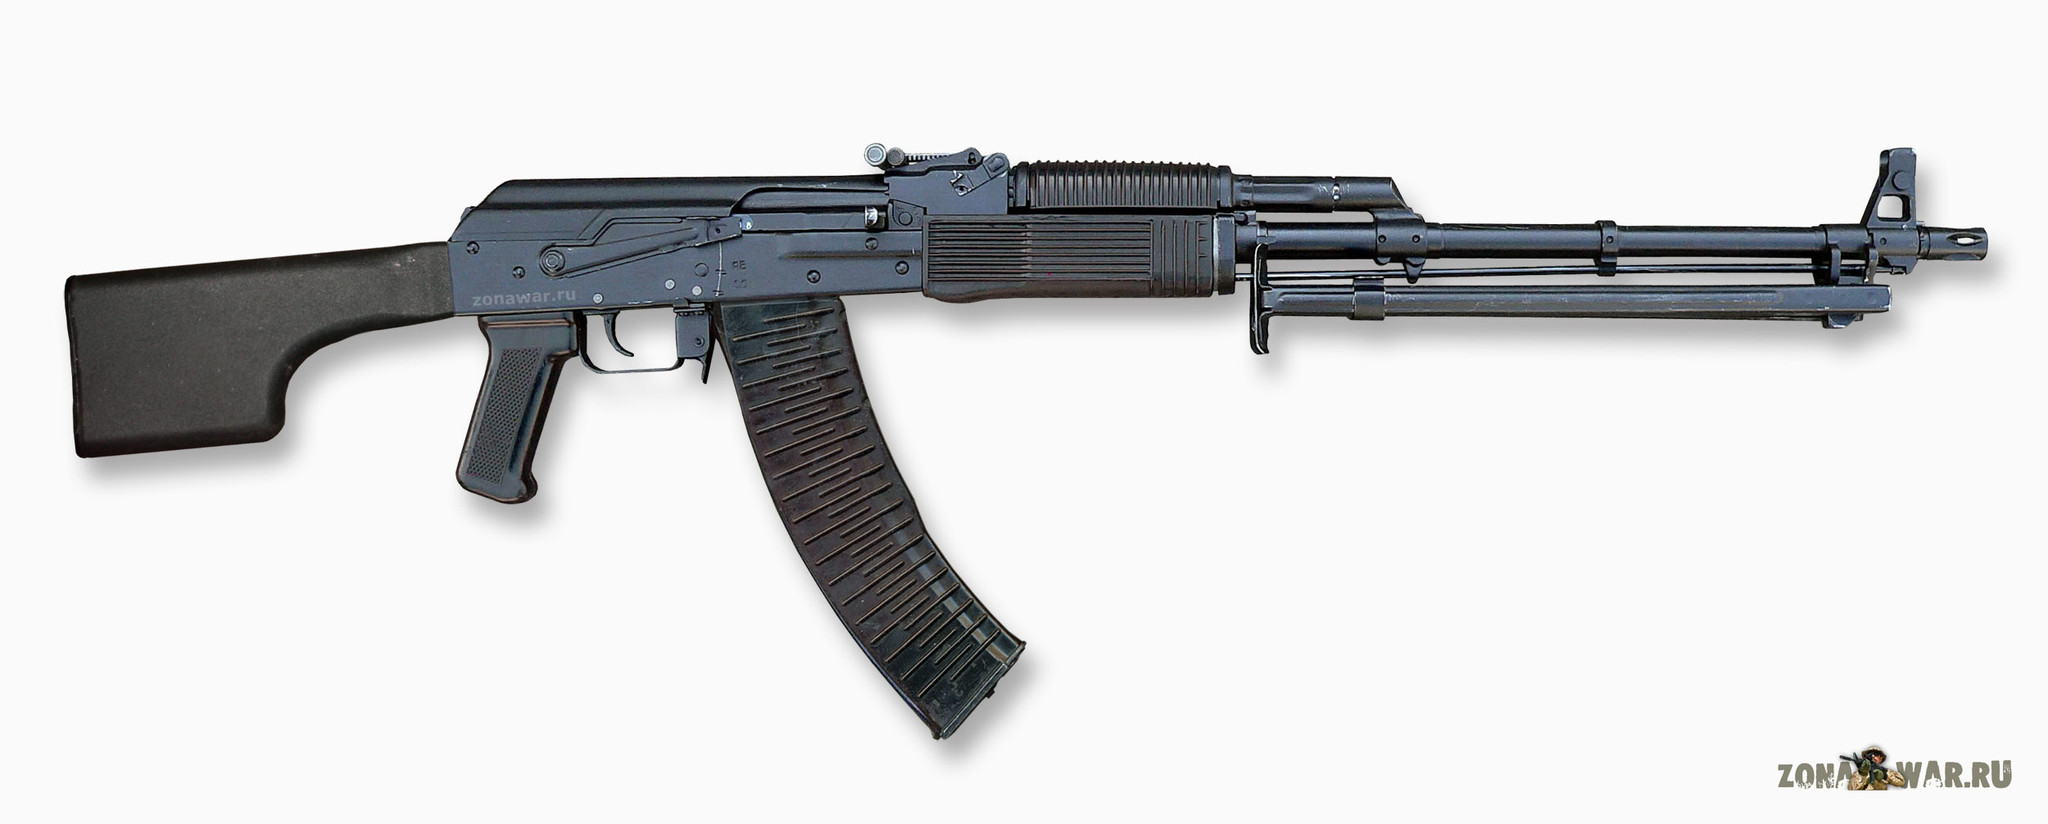 Kalashnikov machine gun: specifications and photos. Russian firearms 65